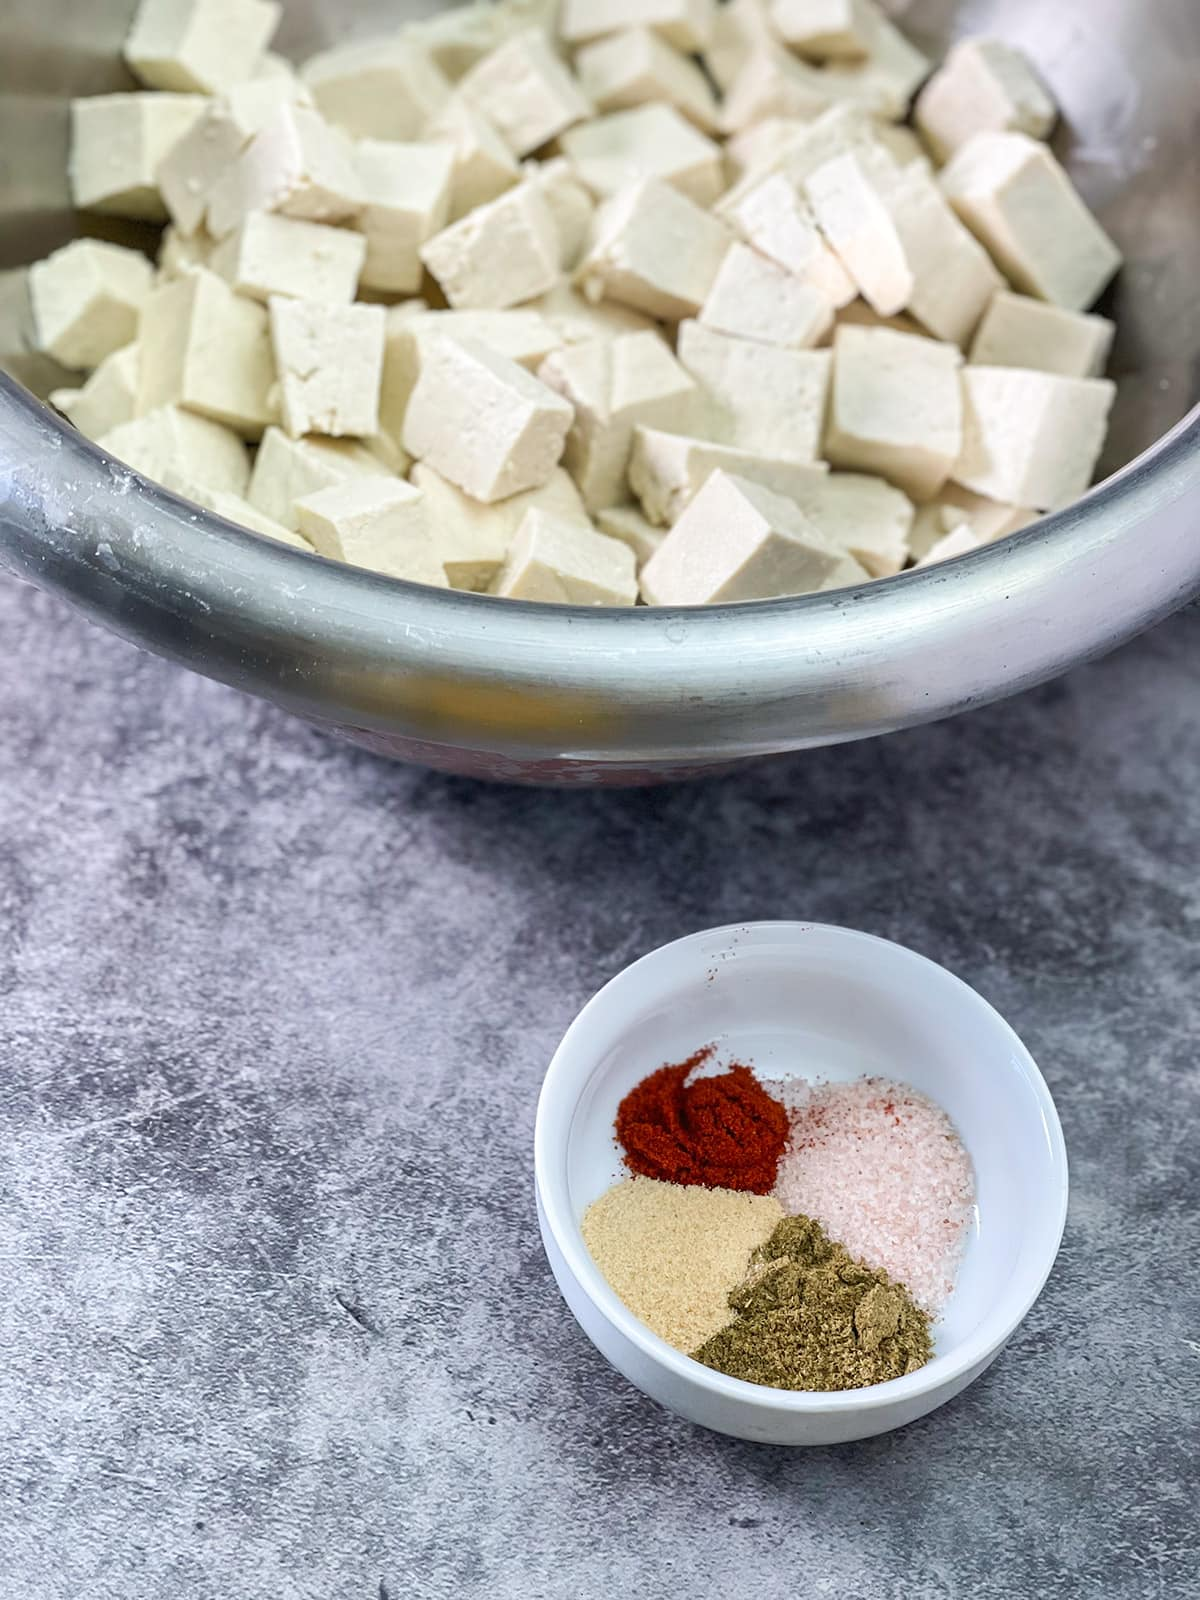 tofu with spices in a white bowl on a concete bad